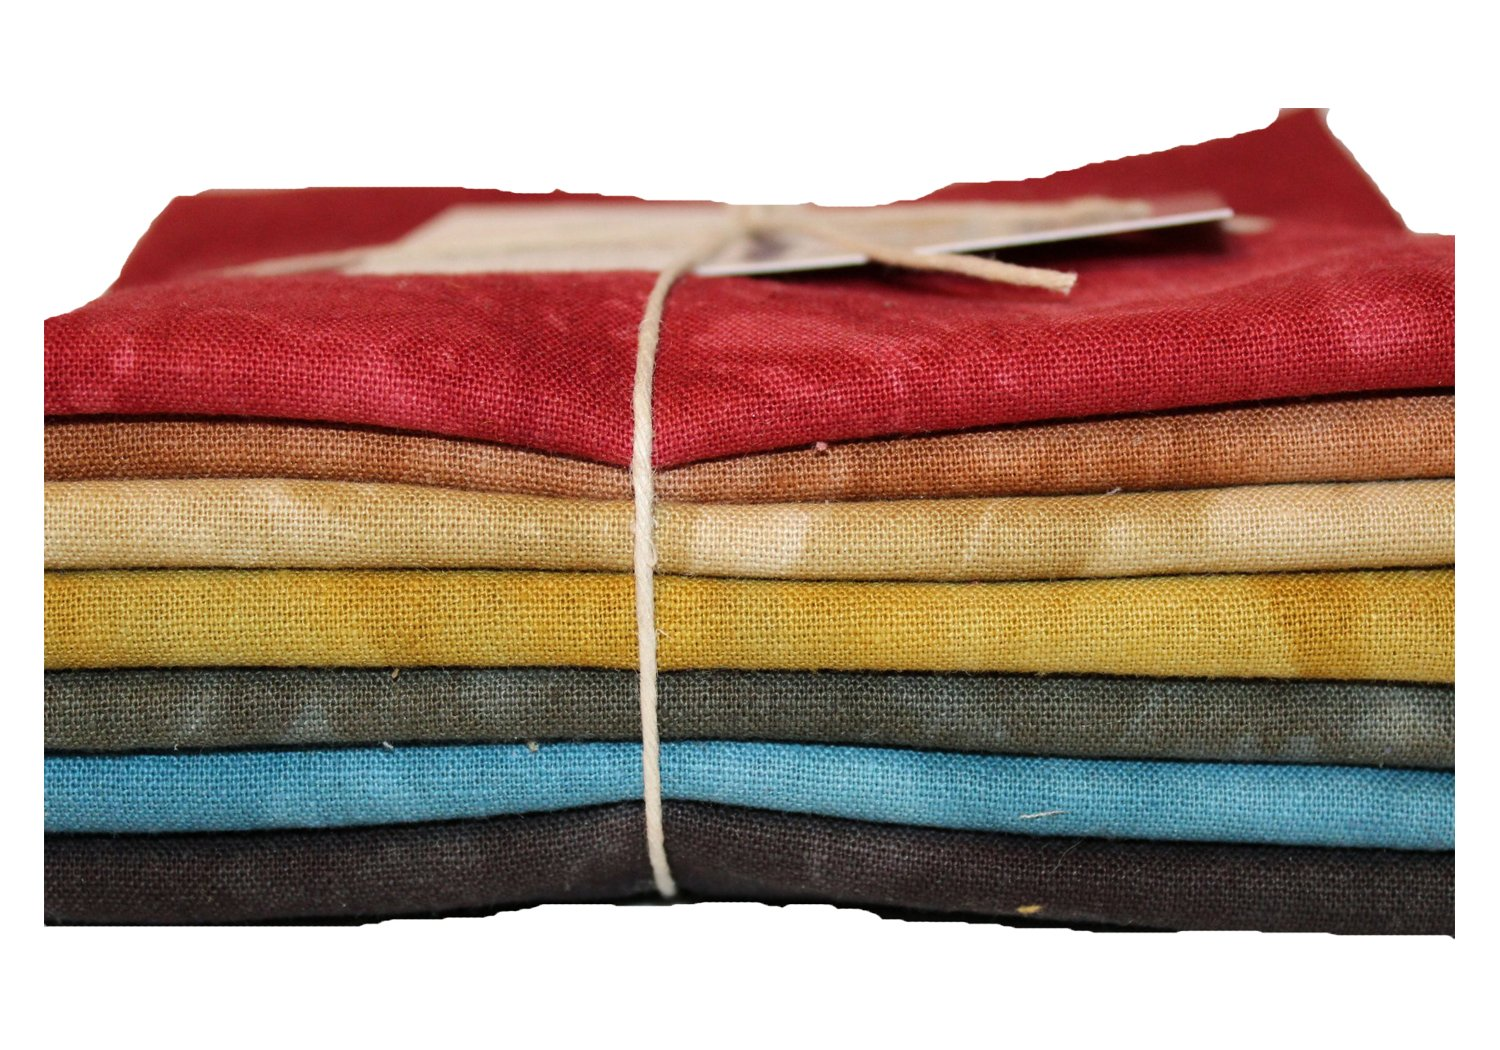 Traditionals Hand-dyed Linen Fat Quarter 7pc Set